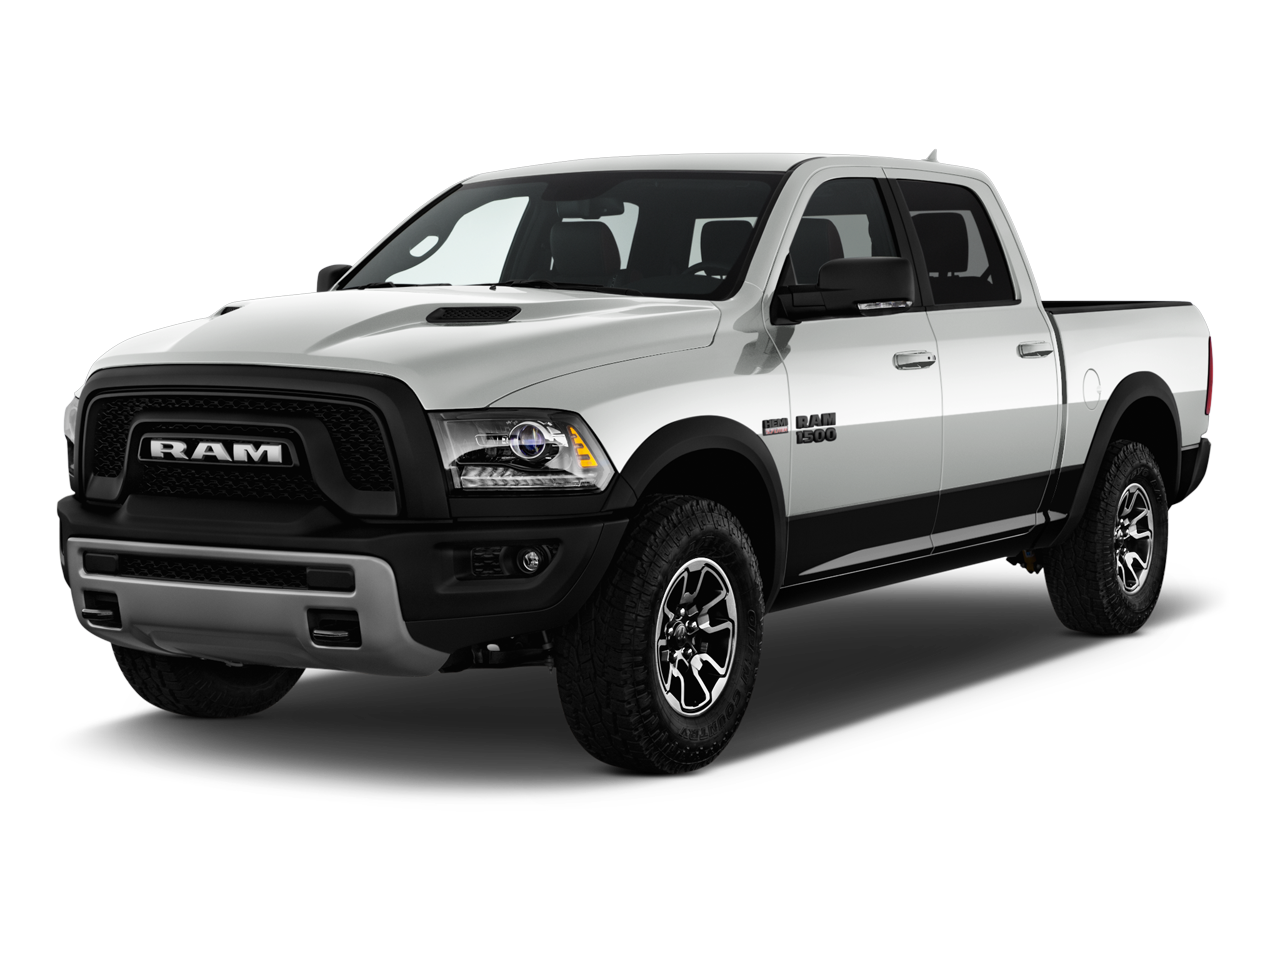 new 2017 ram 1500 rebel near castle rock co medved. Black Bedroom Furniture Sets. Home Design Ideas